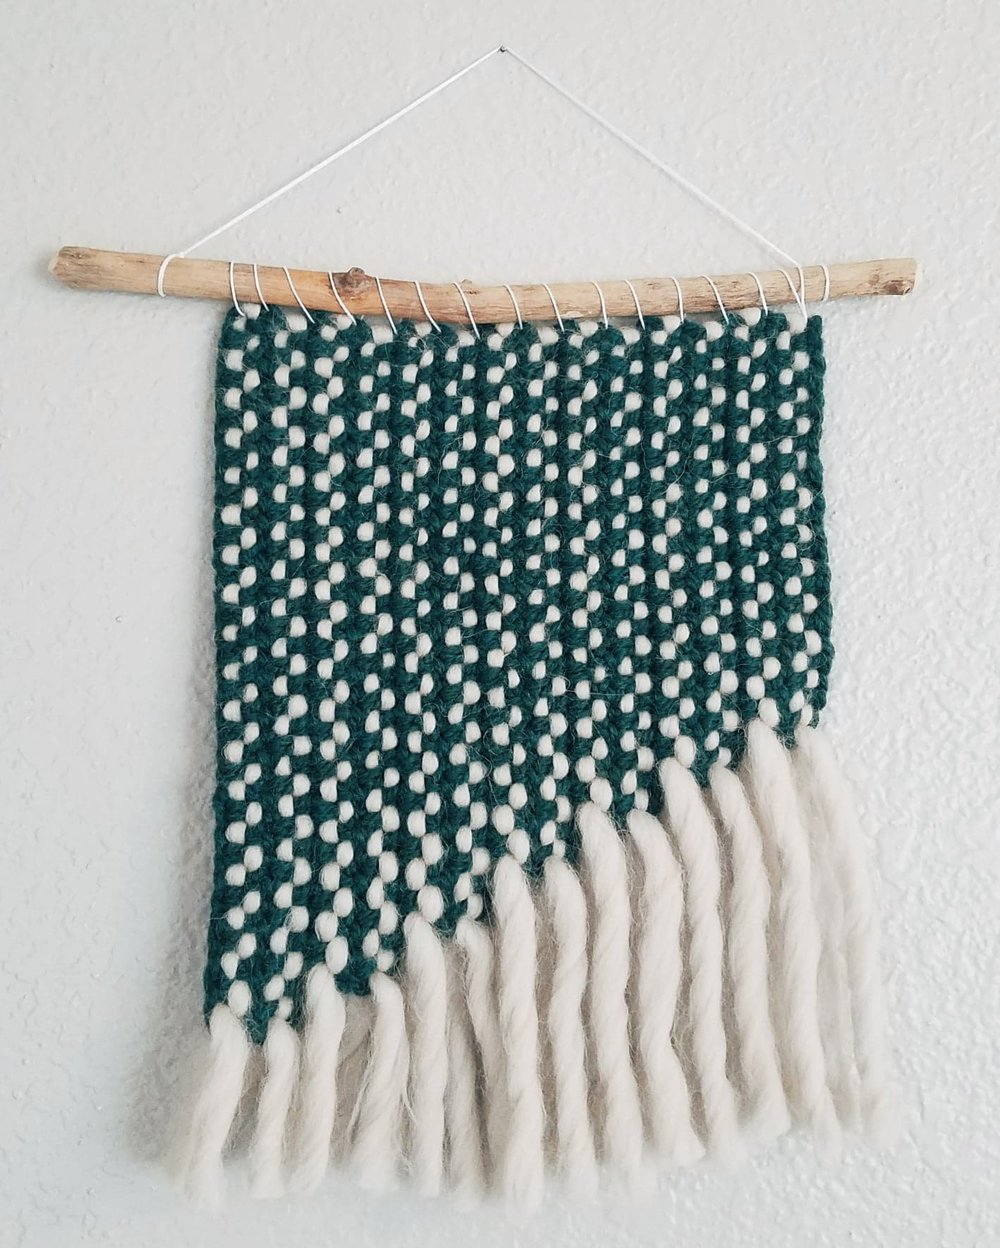 Arequipa Wall Hanging - The Homely Alpaca